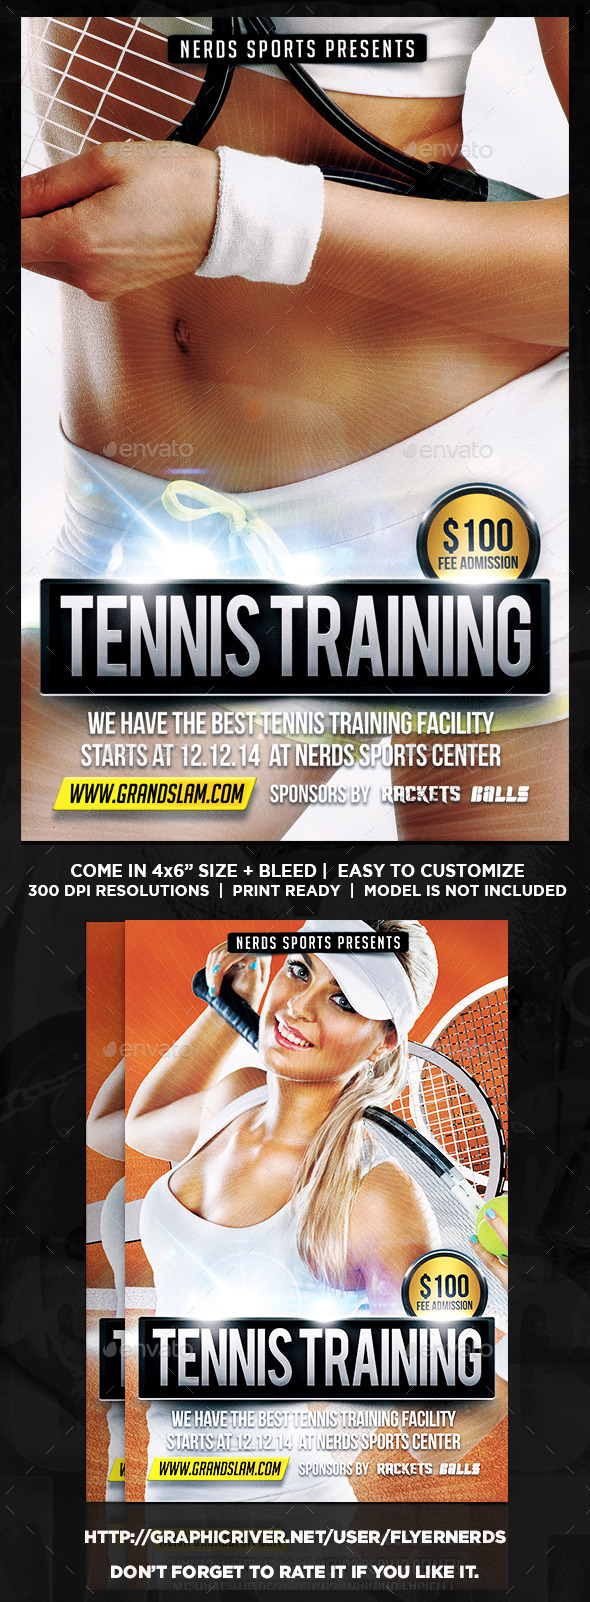 GraphicRiver Tennis Training Flyer 9327522